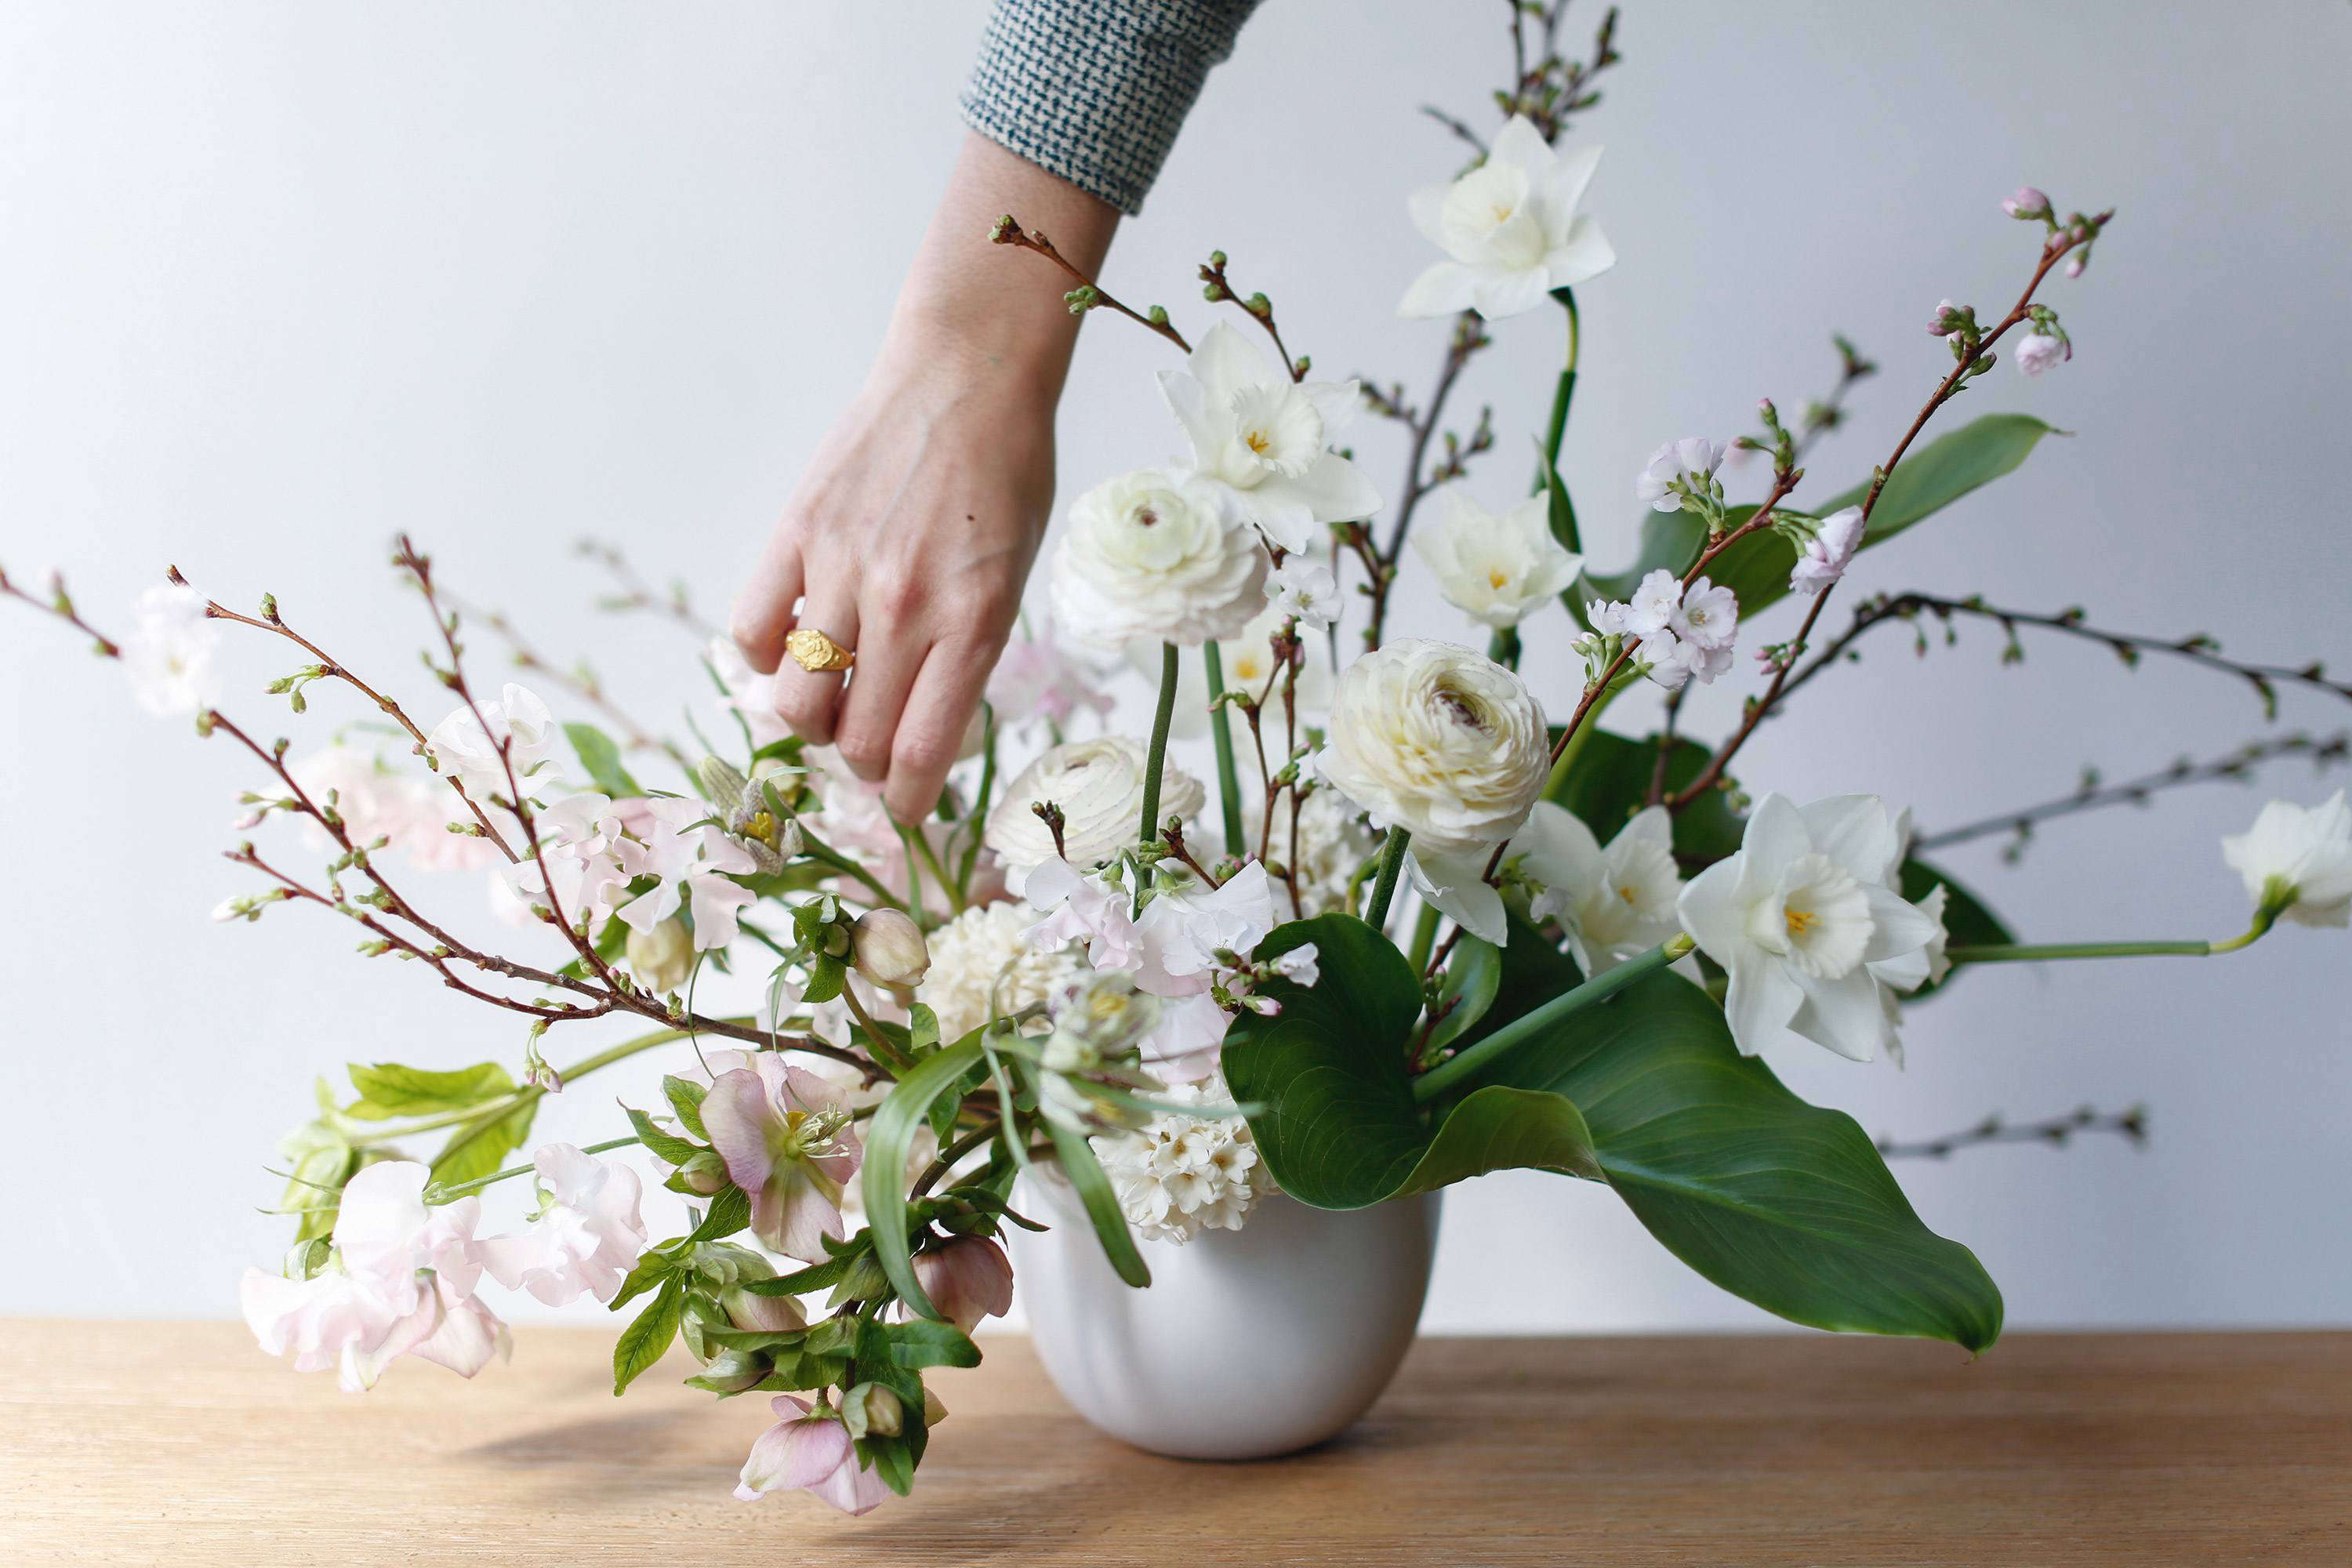 Flower Arrangements 101: A Crash Course for Easy and Elegant ...